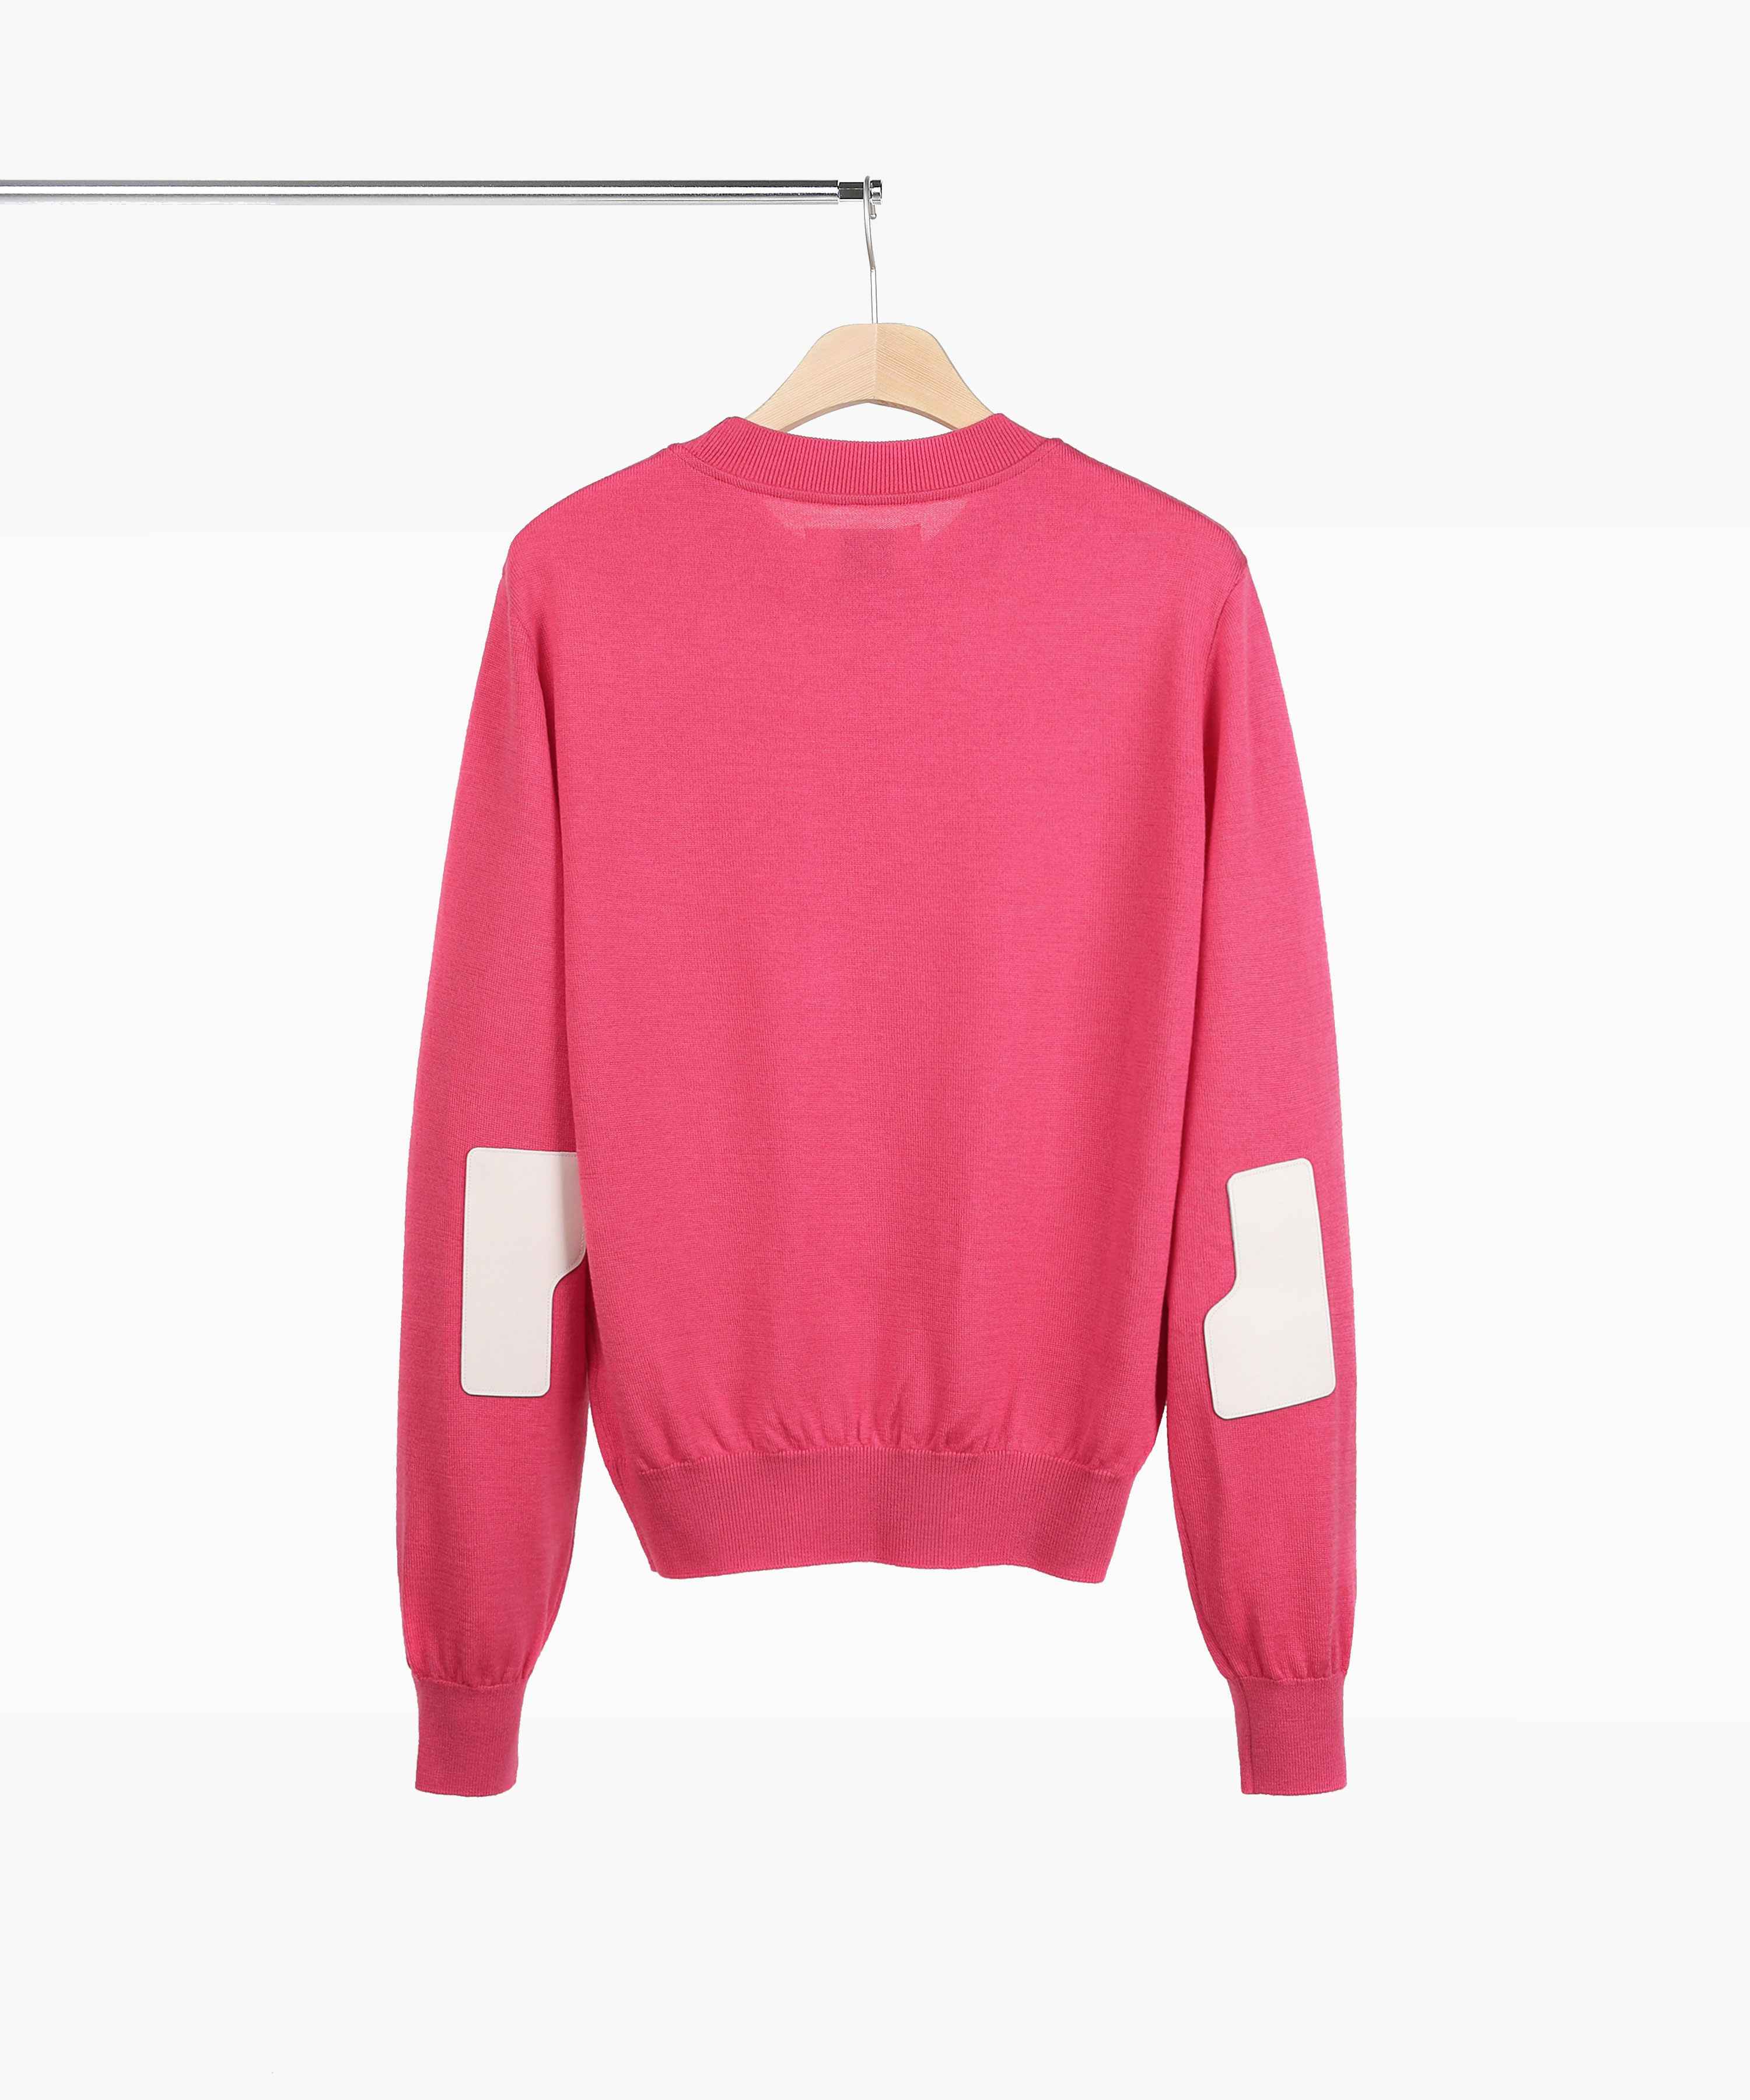 PINK ROVER WOOL KNIT 02